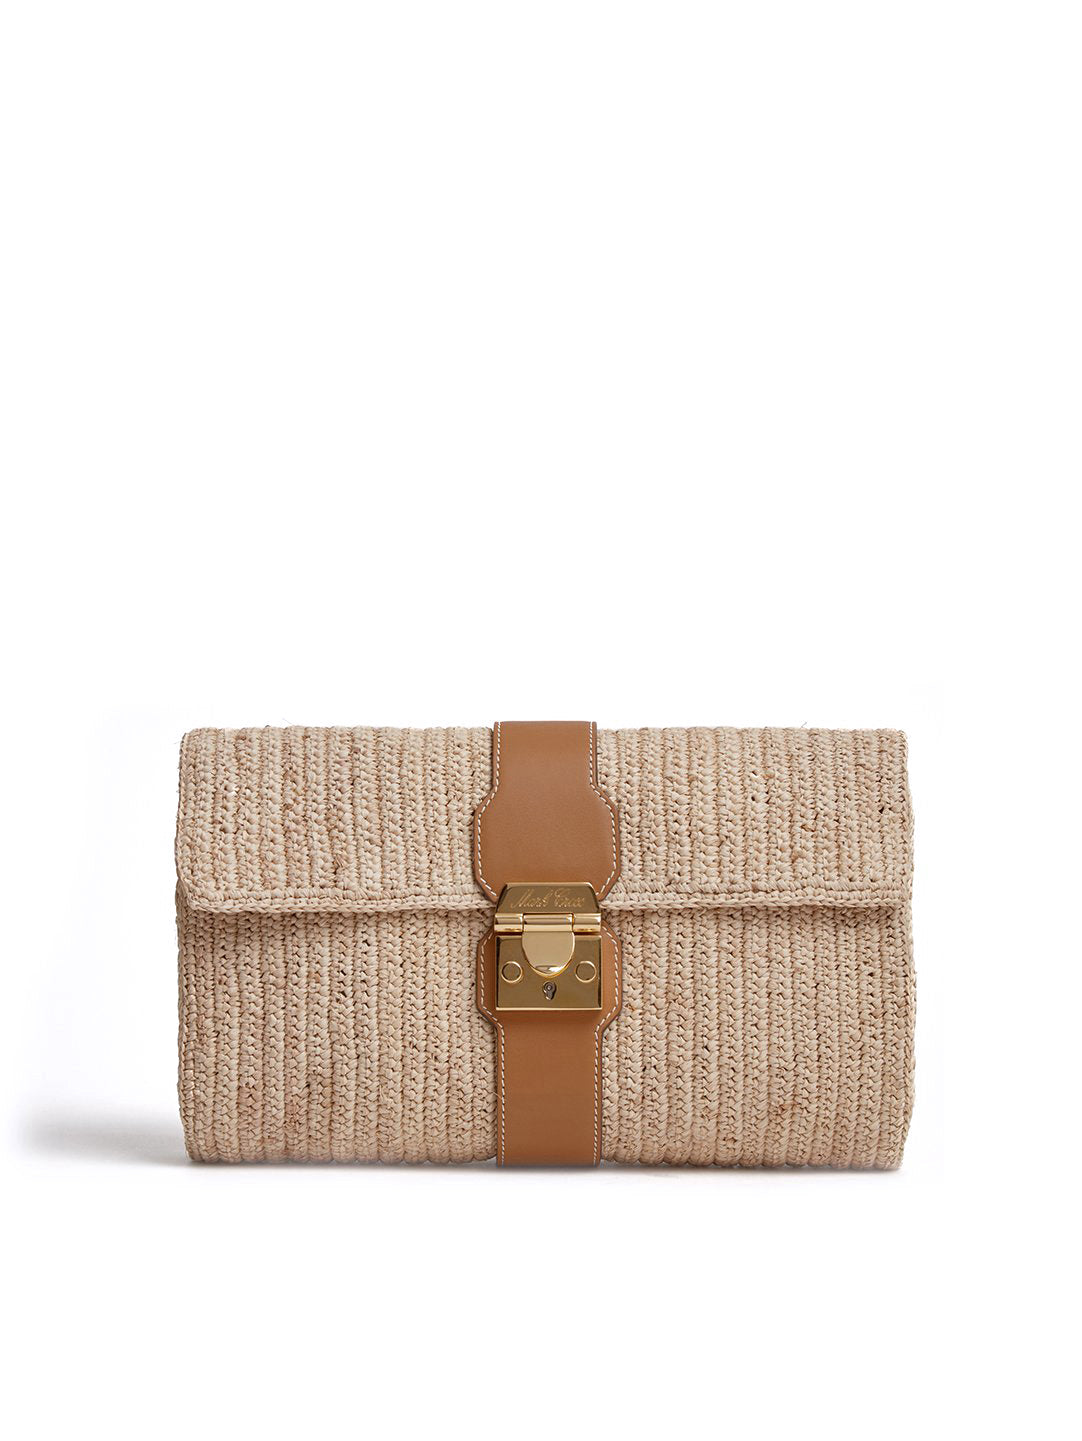 Mark Cross Sylvette Raffia & Leather Clutch Smooth Calf Luggage / Natural Raffia Front